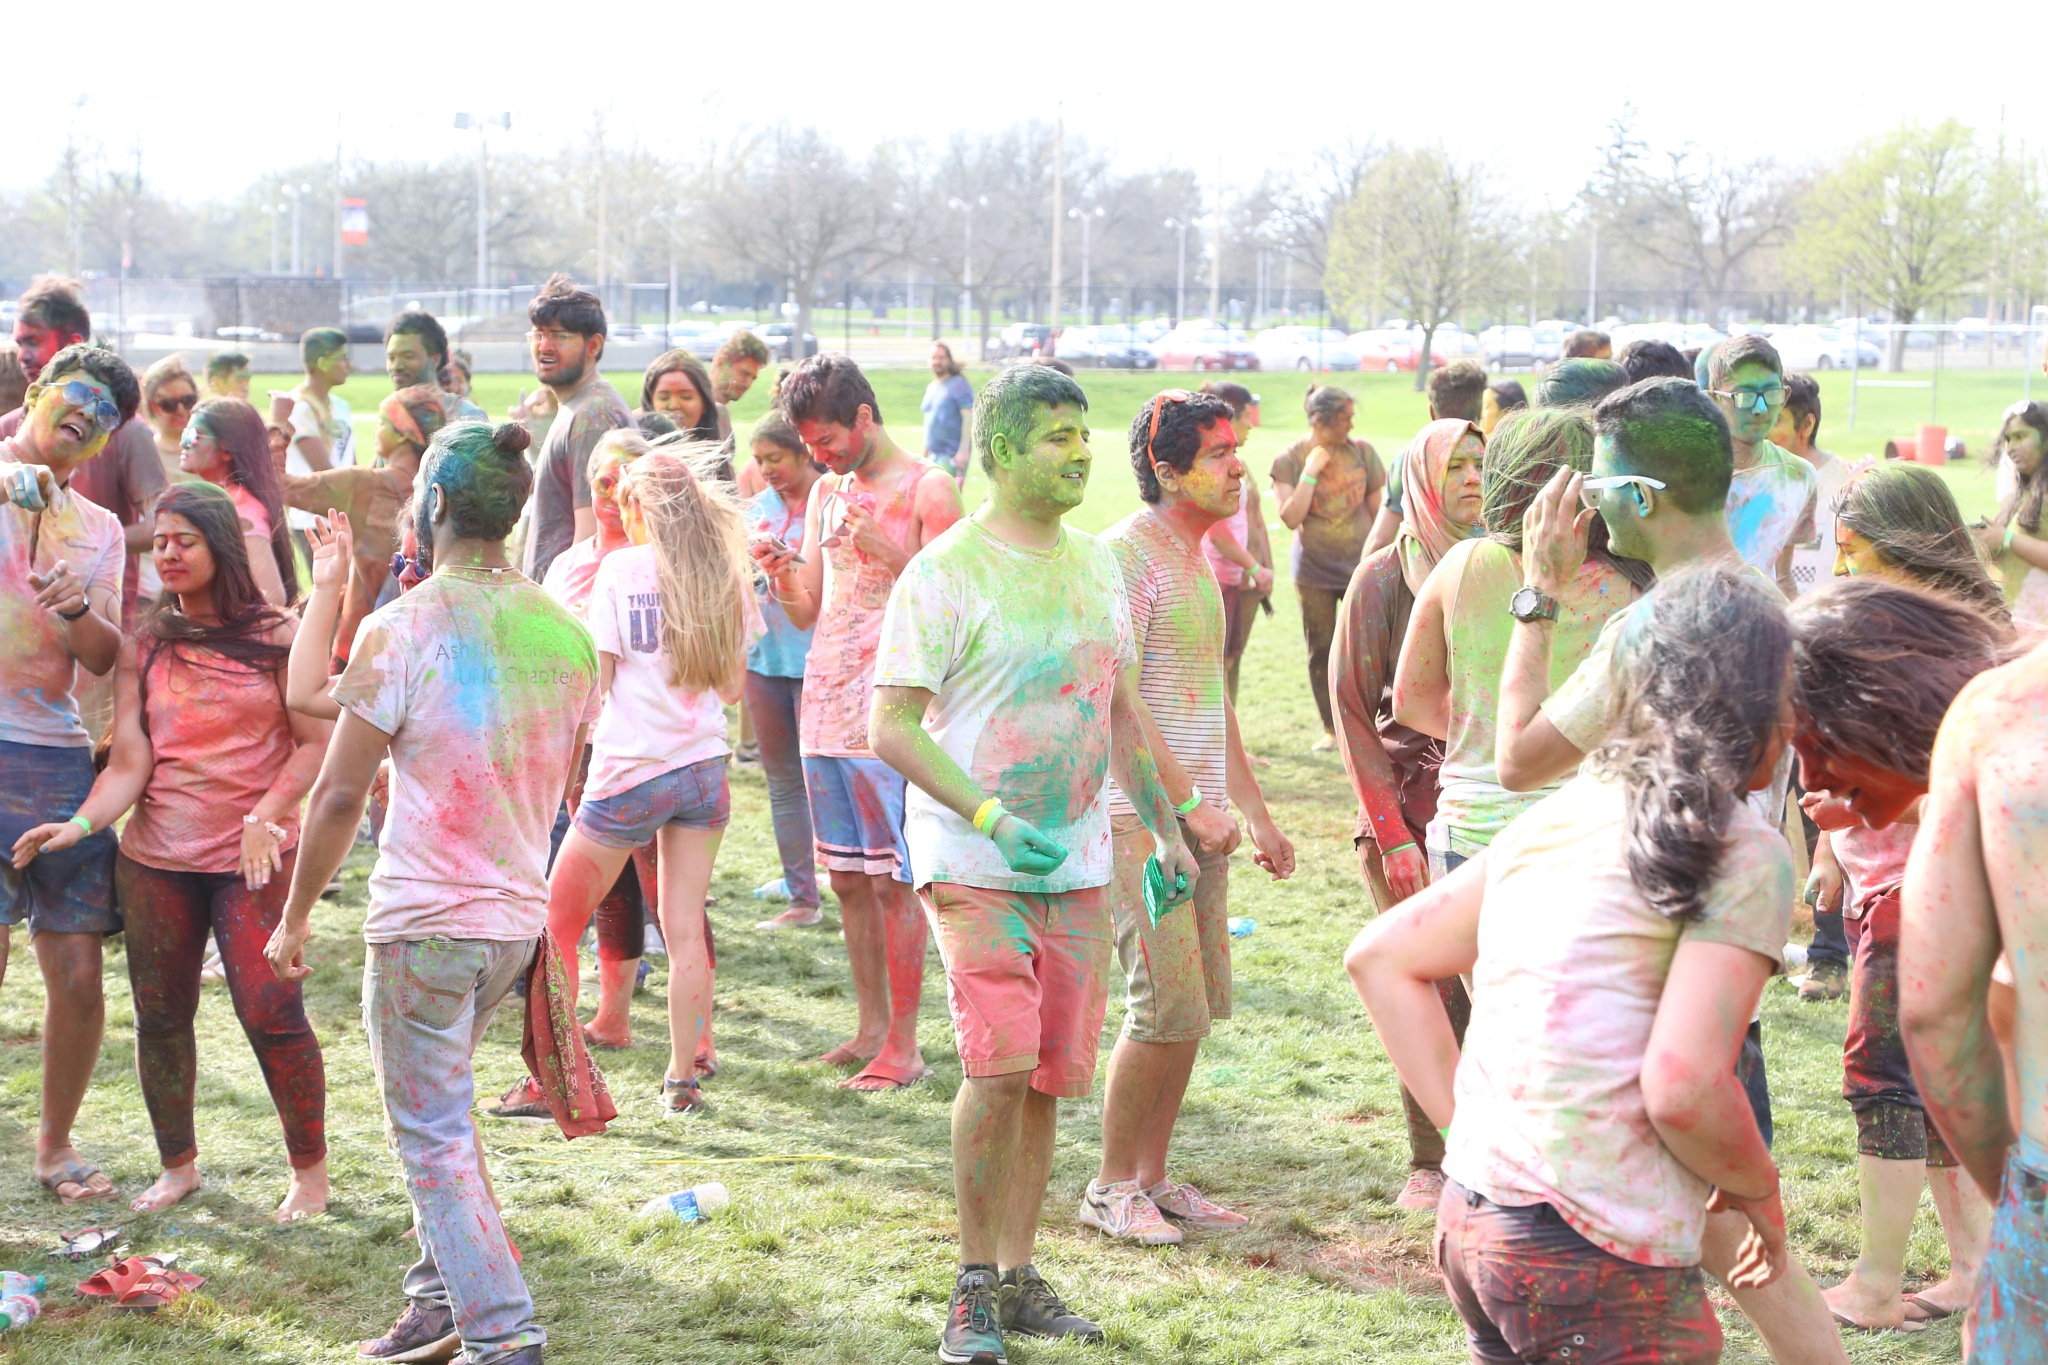 Holi Festival 6 by Henry M. Radcliffe III